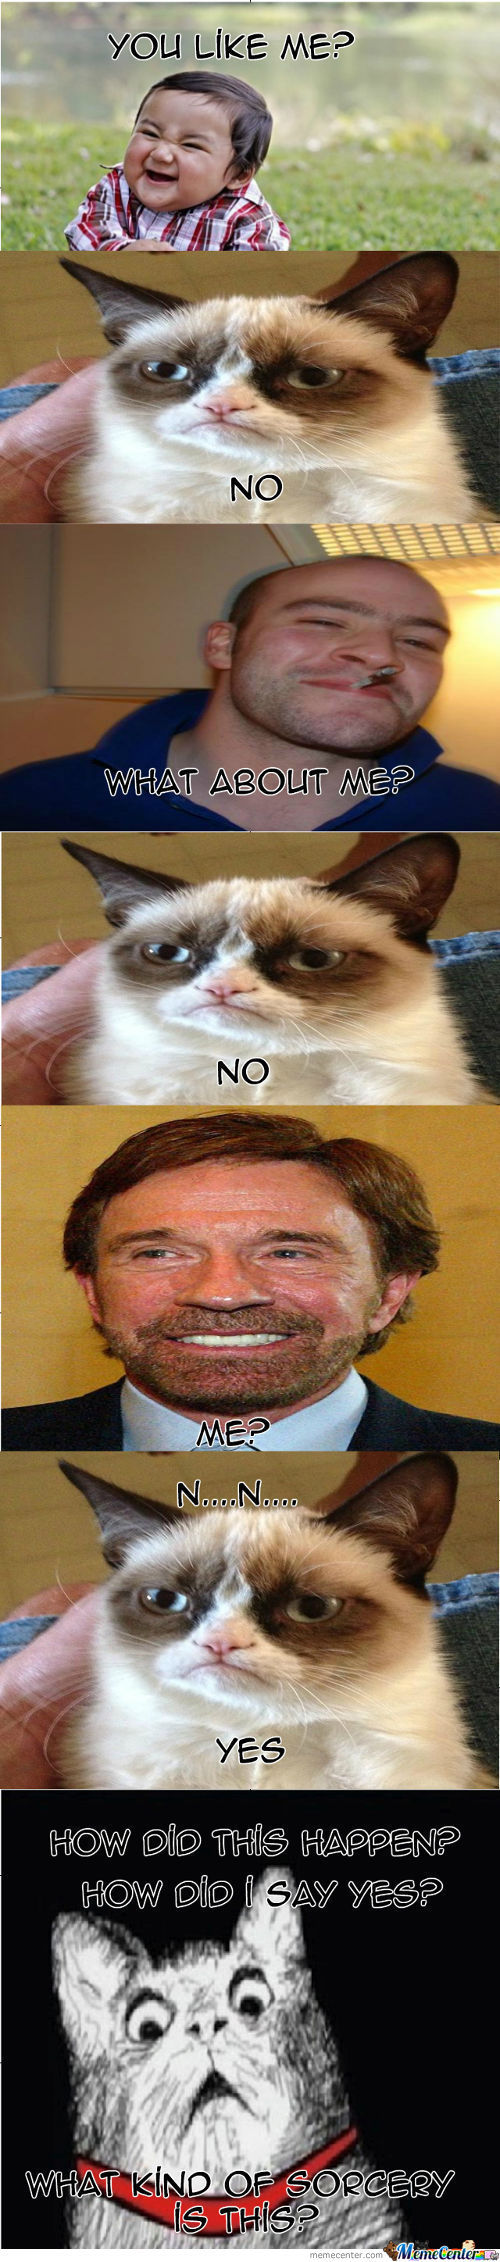 The Power Of Chuck Norris